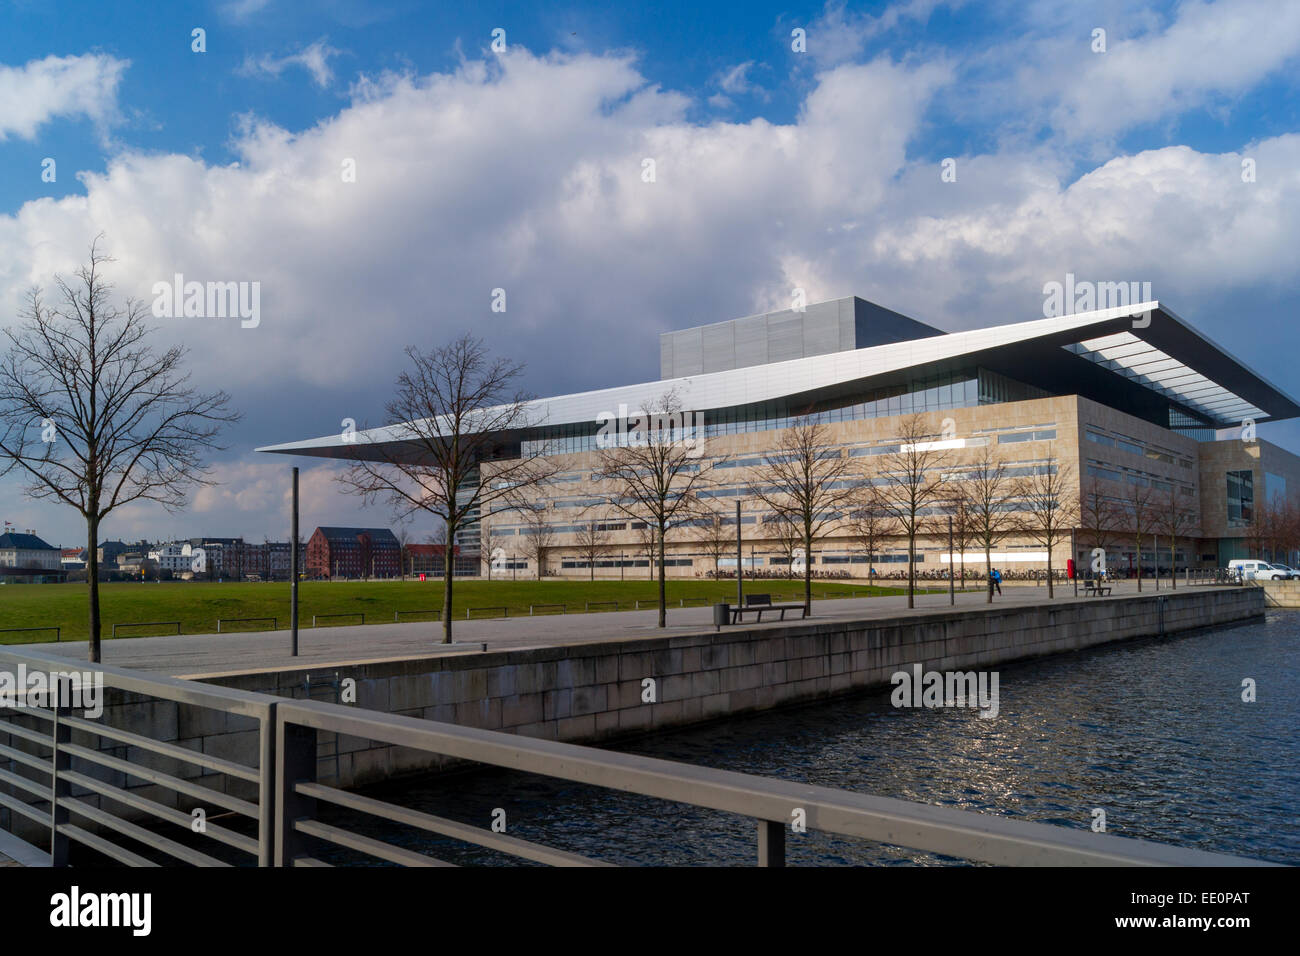 The Copenhagen Opera House designed by Henning Larsen. Copenhagen, Denmark Stock Photo